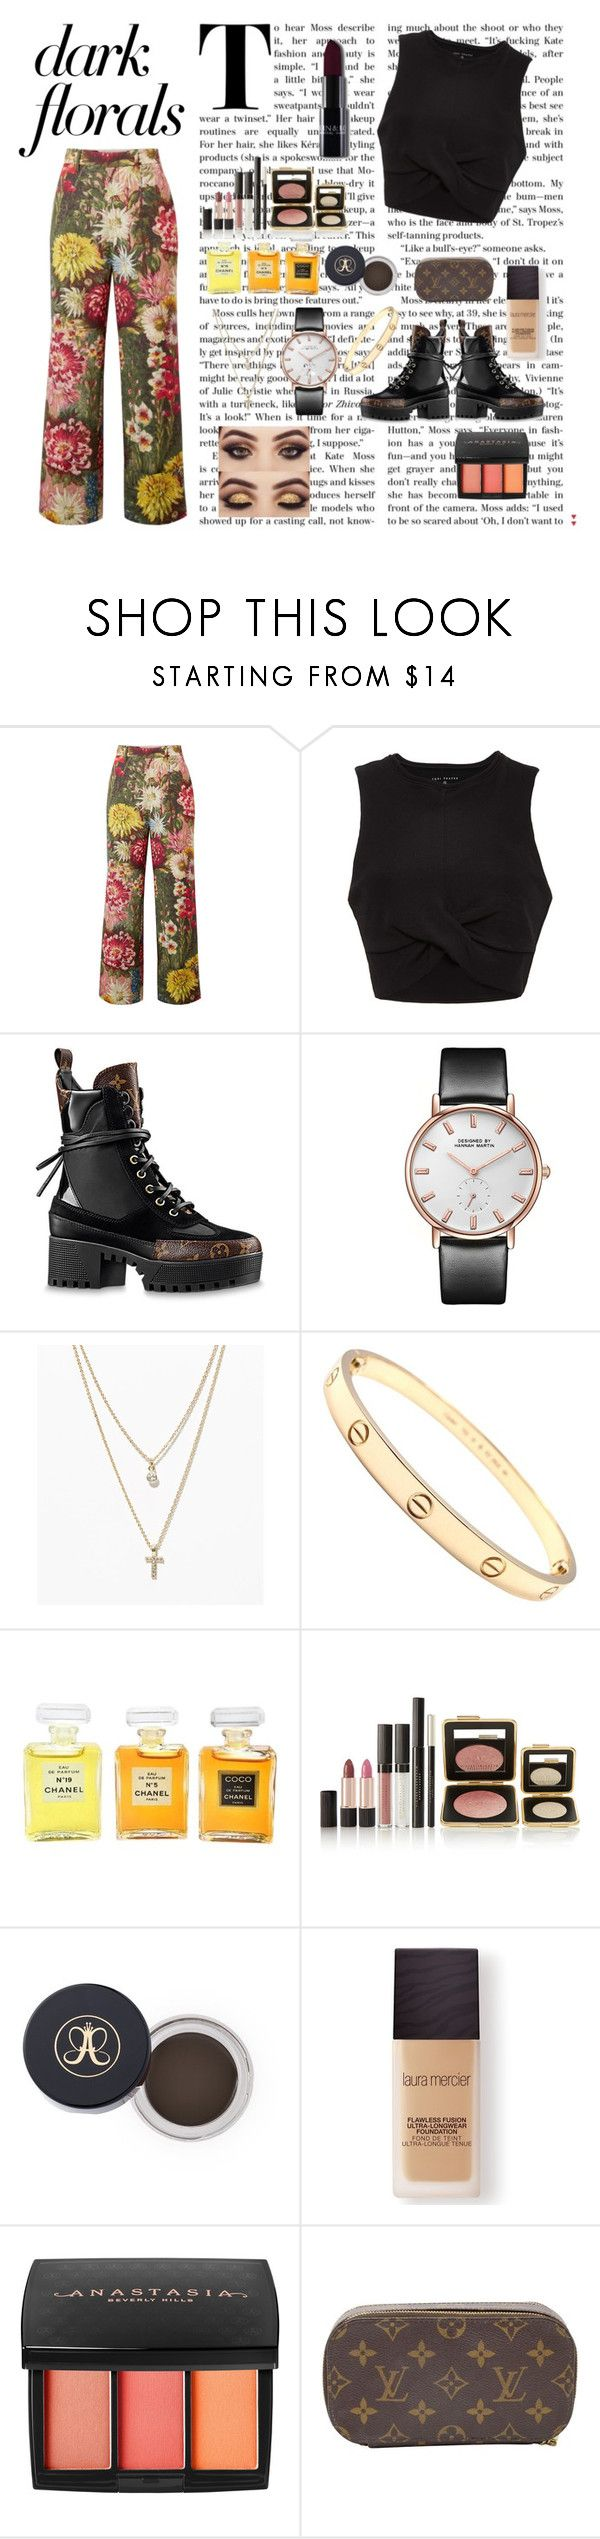 """dark florals"" by itsvaleriaaa ❤ liked on Polyvore featuring Gucci, Tori Praver Swimwear, Louis Vuitton, LOFT, Cartier, Chanel, Estée Lauder, Anastasia Beverly Hills and Laura Mercier"